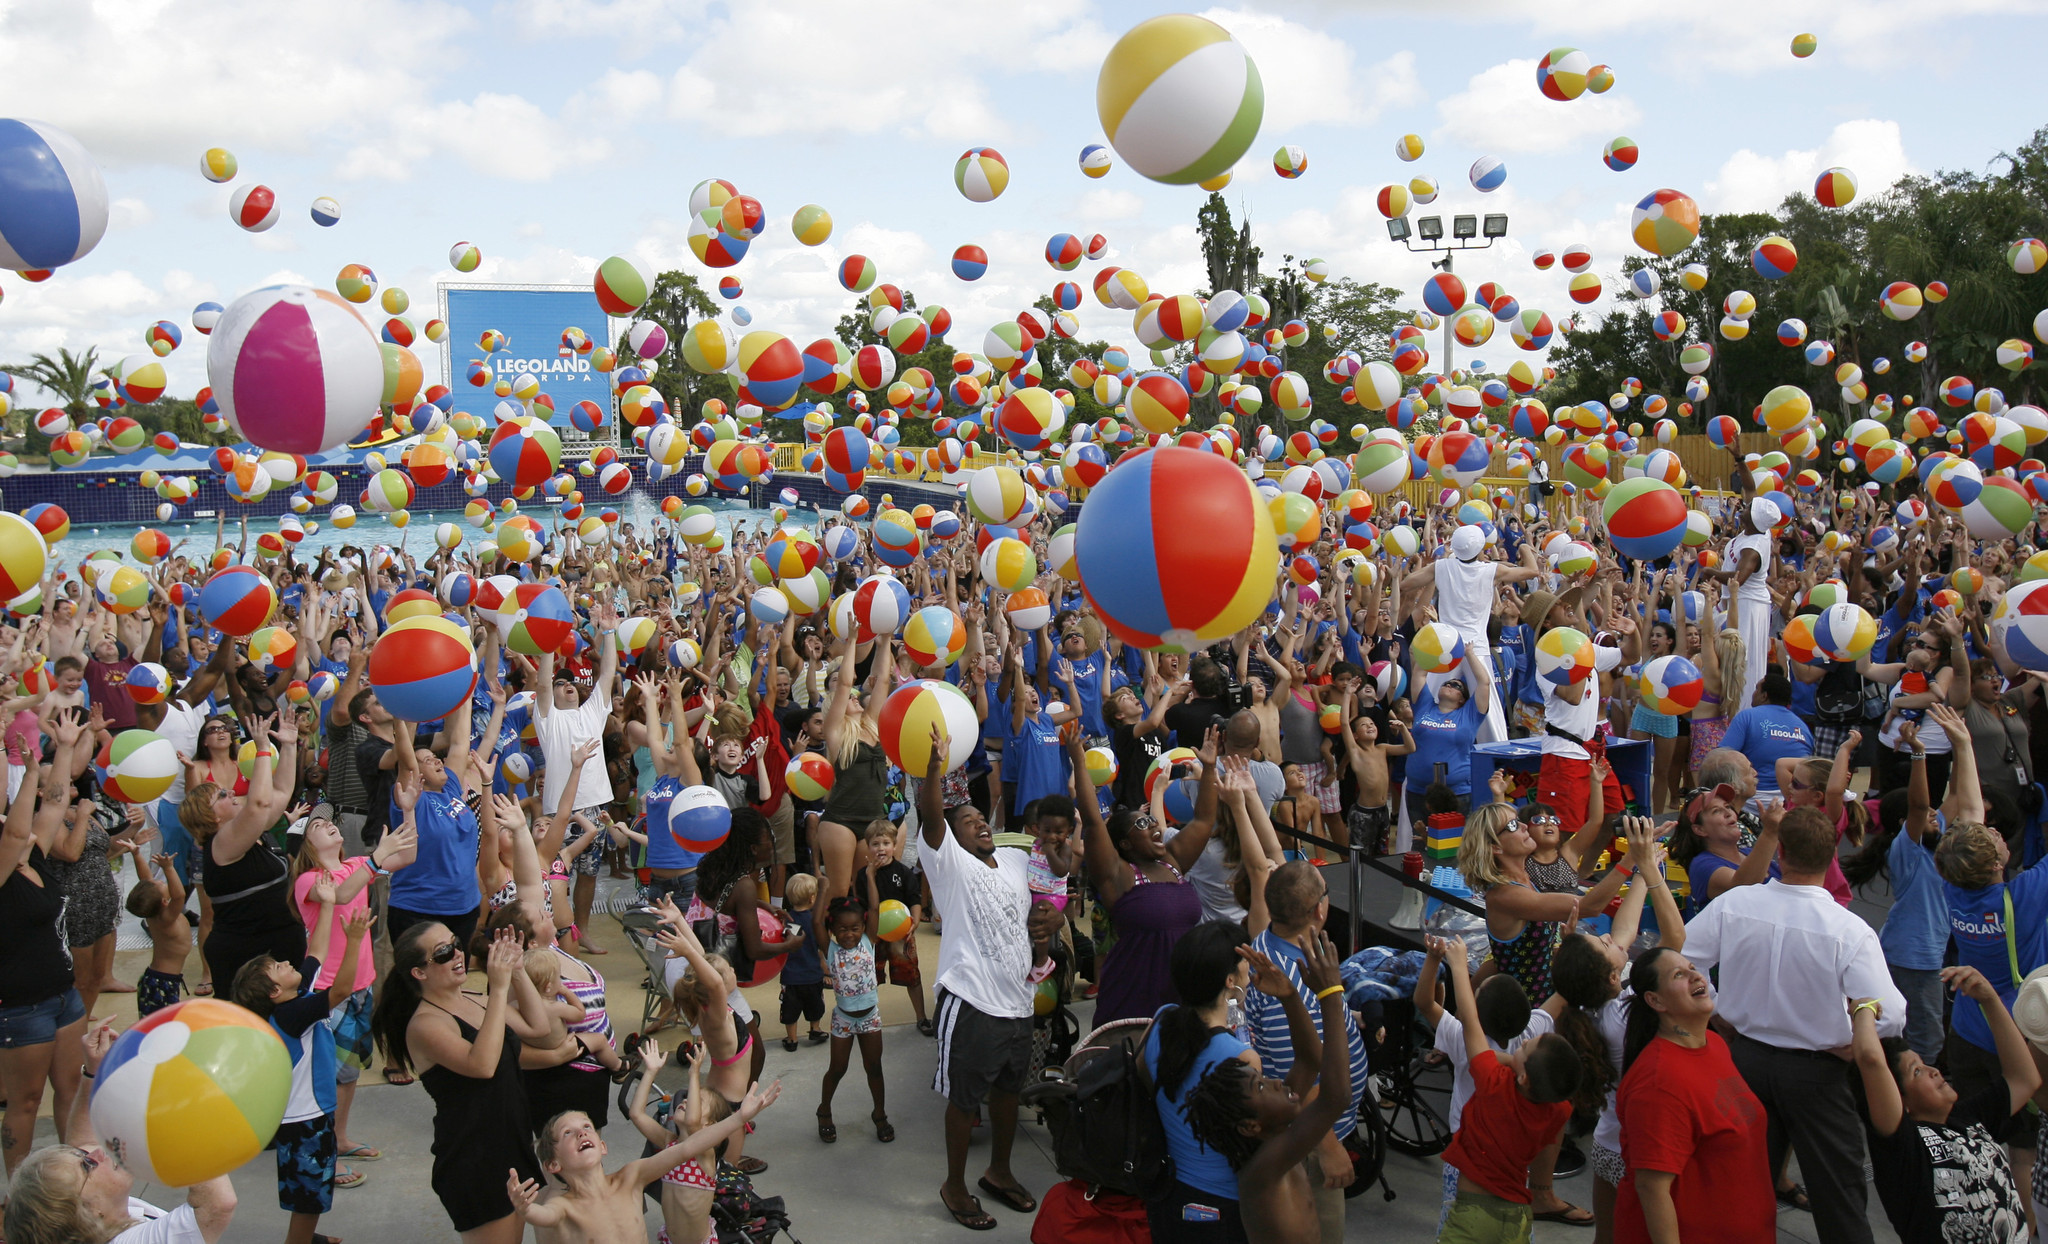 Guests at Legoland's new water park attempt to break a world record by throwing hundreds of beach balls into the air simultaneously during a preview of the park in Winter Haven, Fla. Thursday, May 24, 2012. The grand opening is Saturday, May 26, 2012.